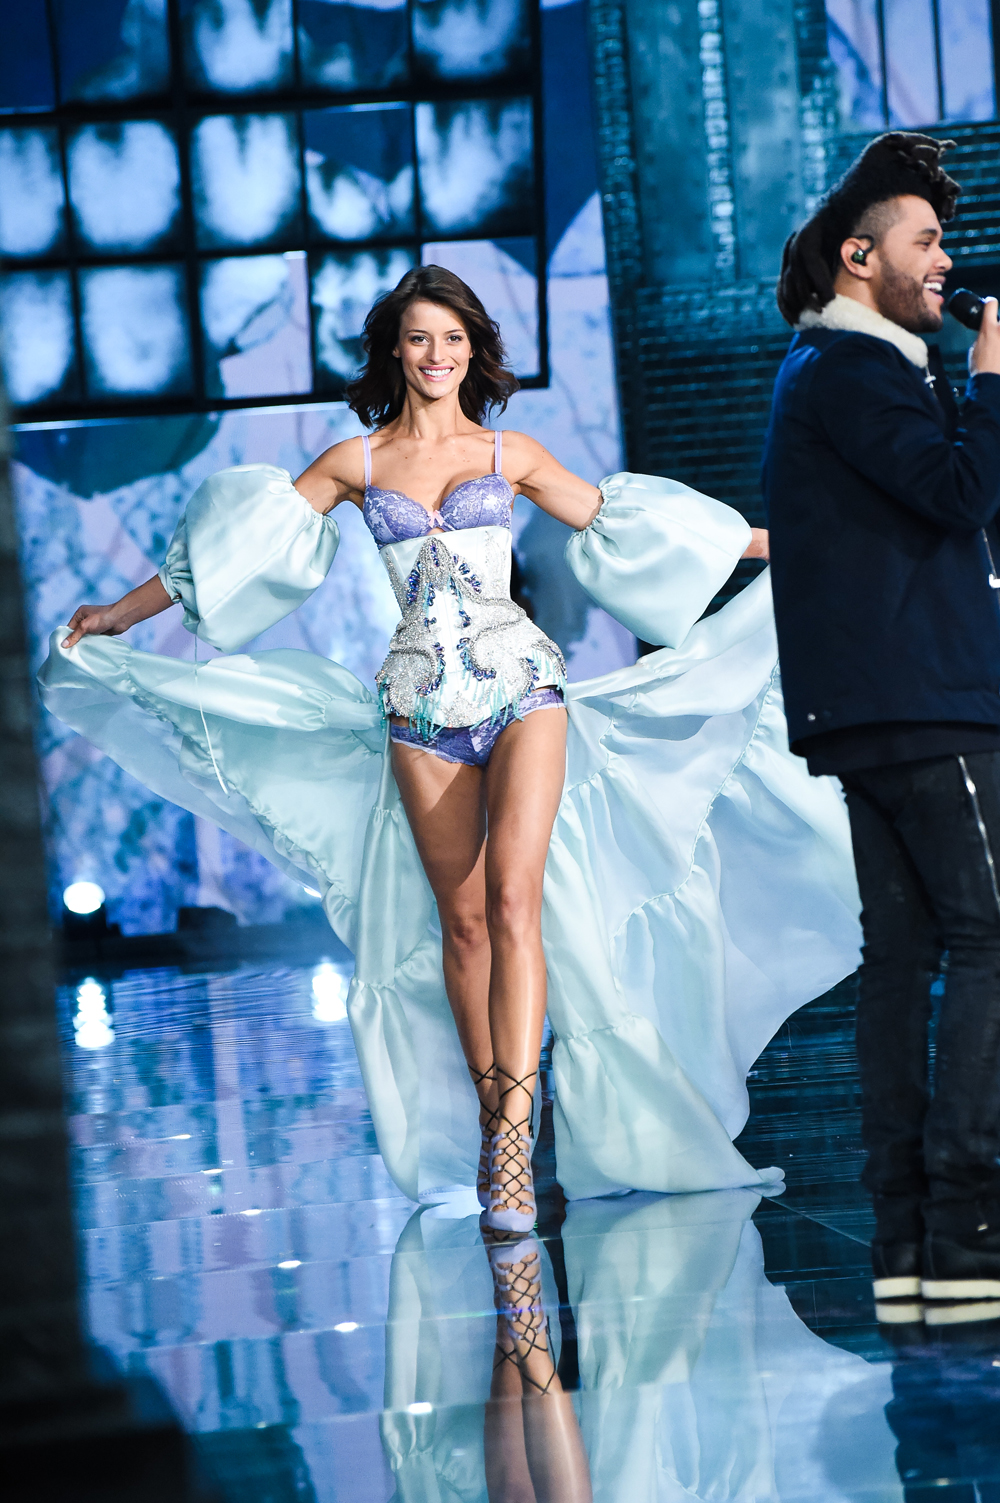 Victoria's Secret and Swarowski light up New York - EuropeanLife ...